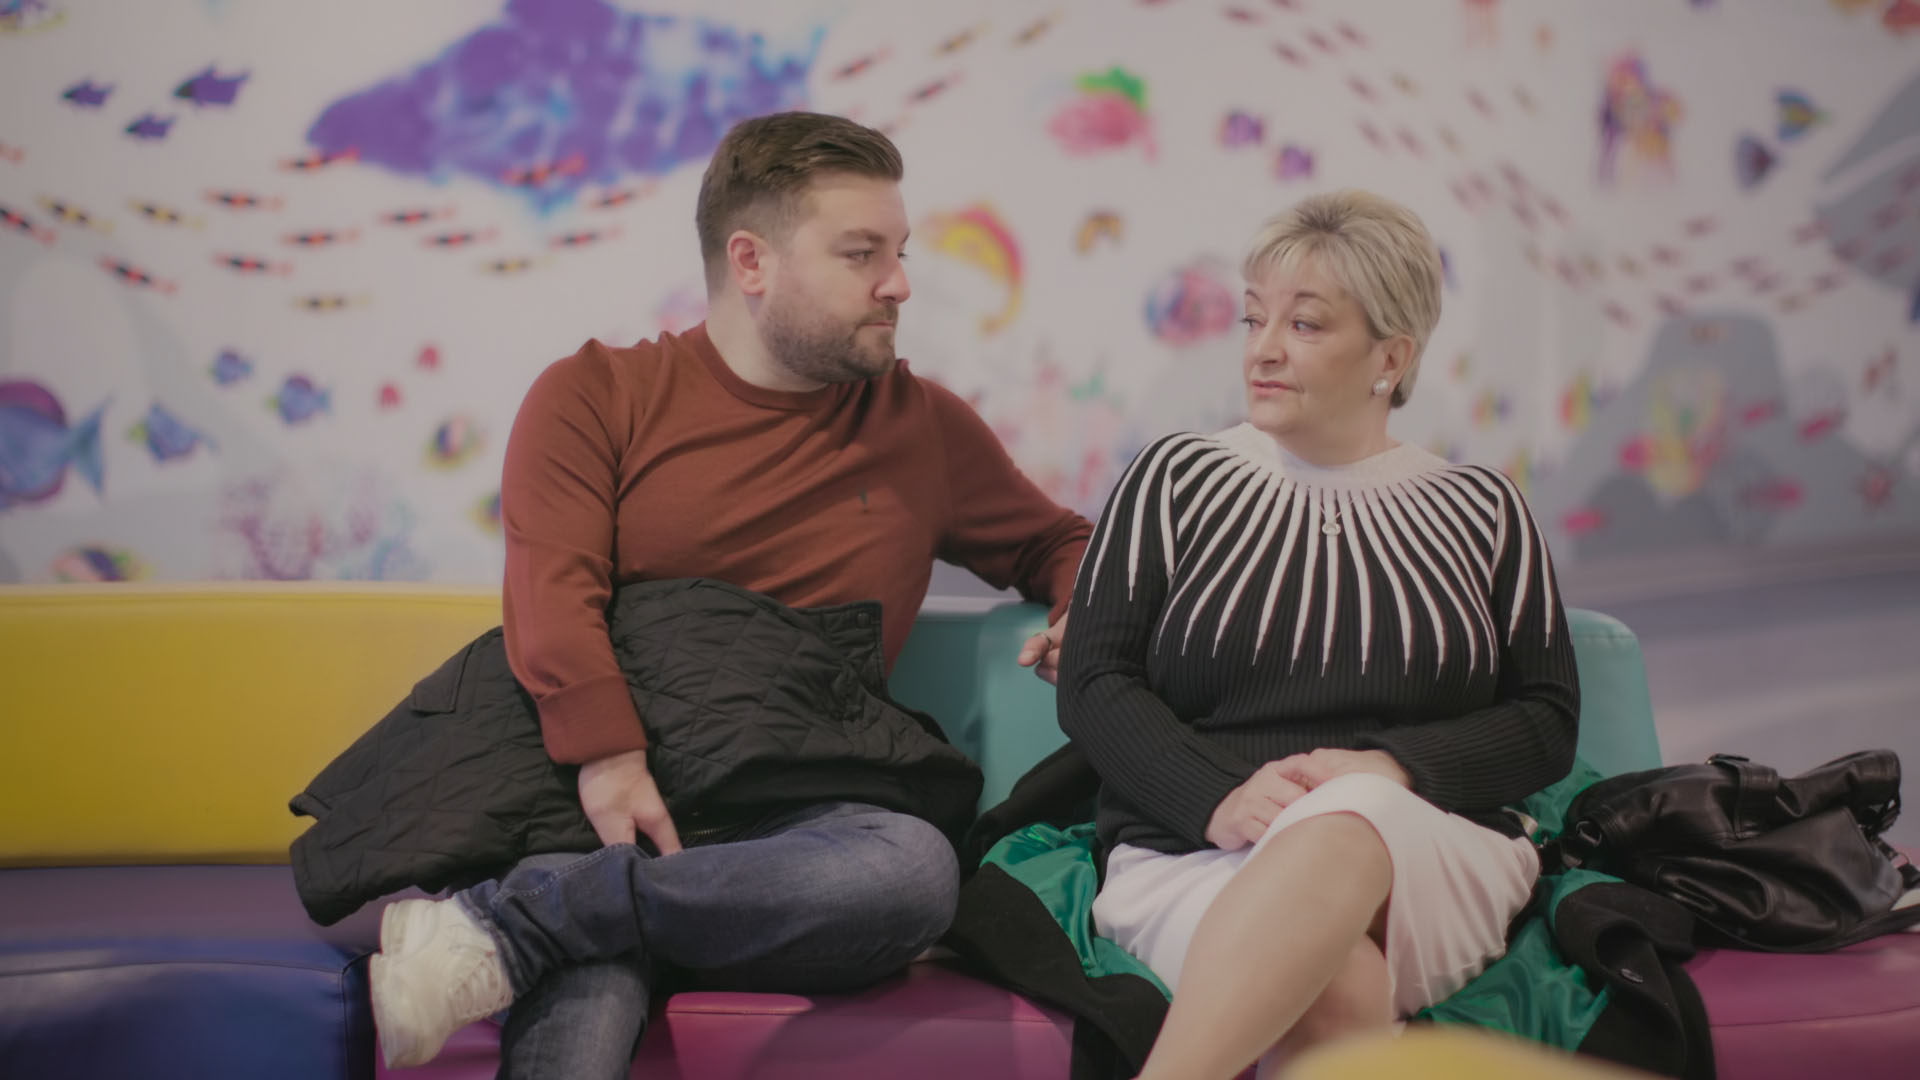 Alex Brooker – Disability and Me